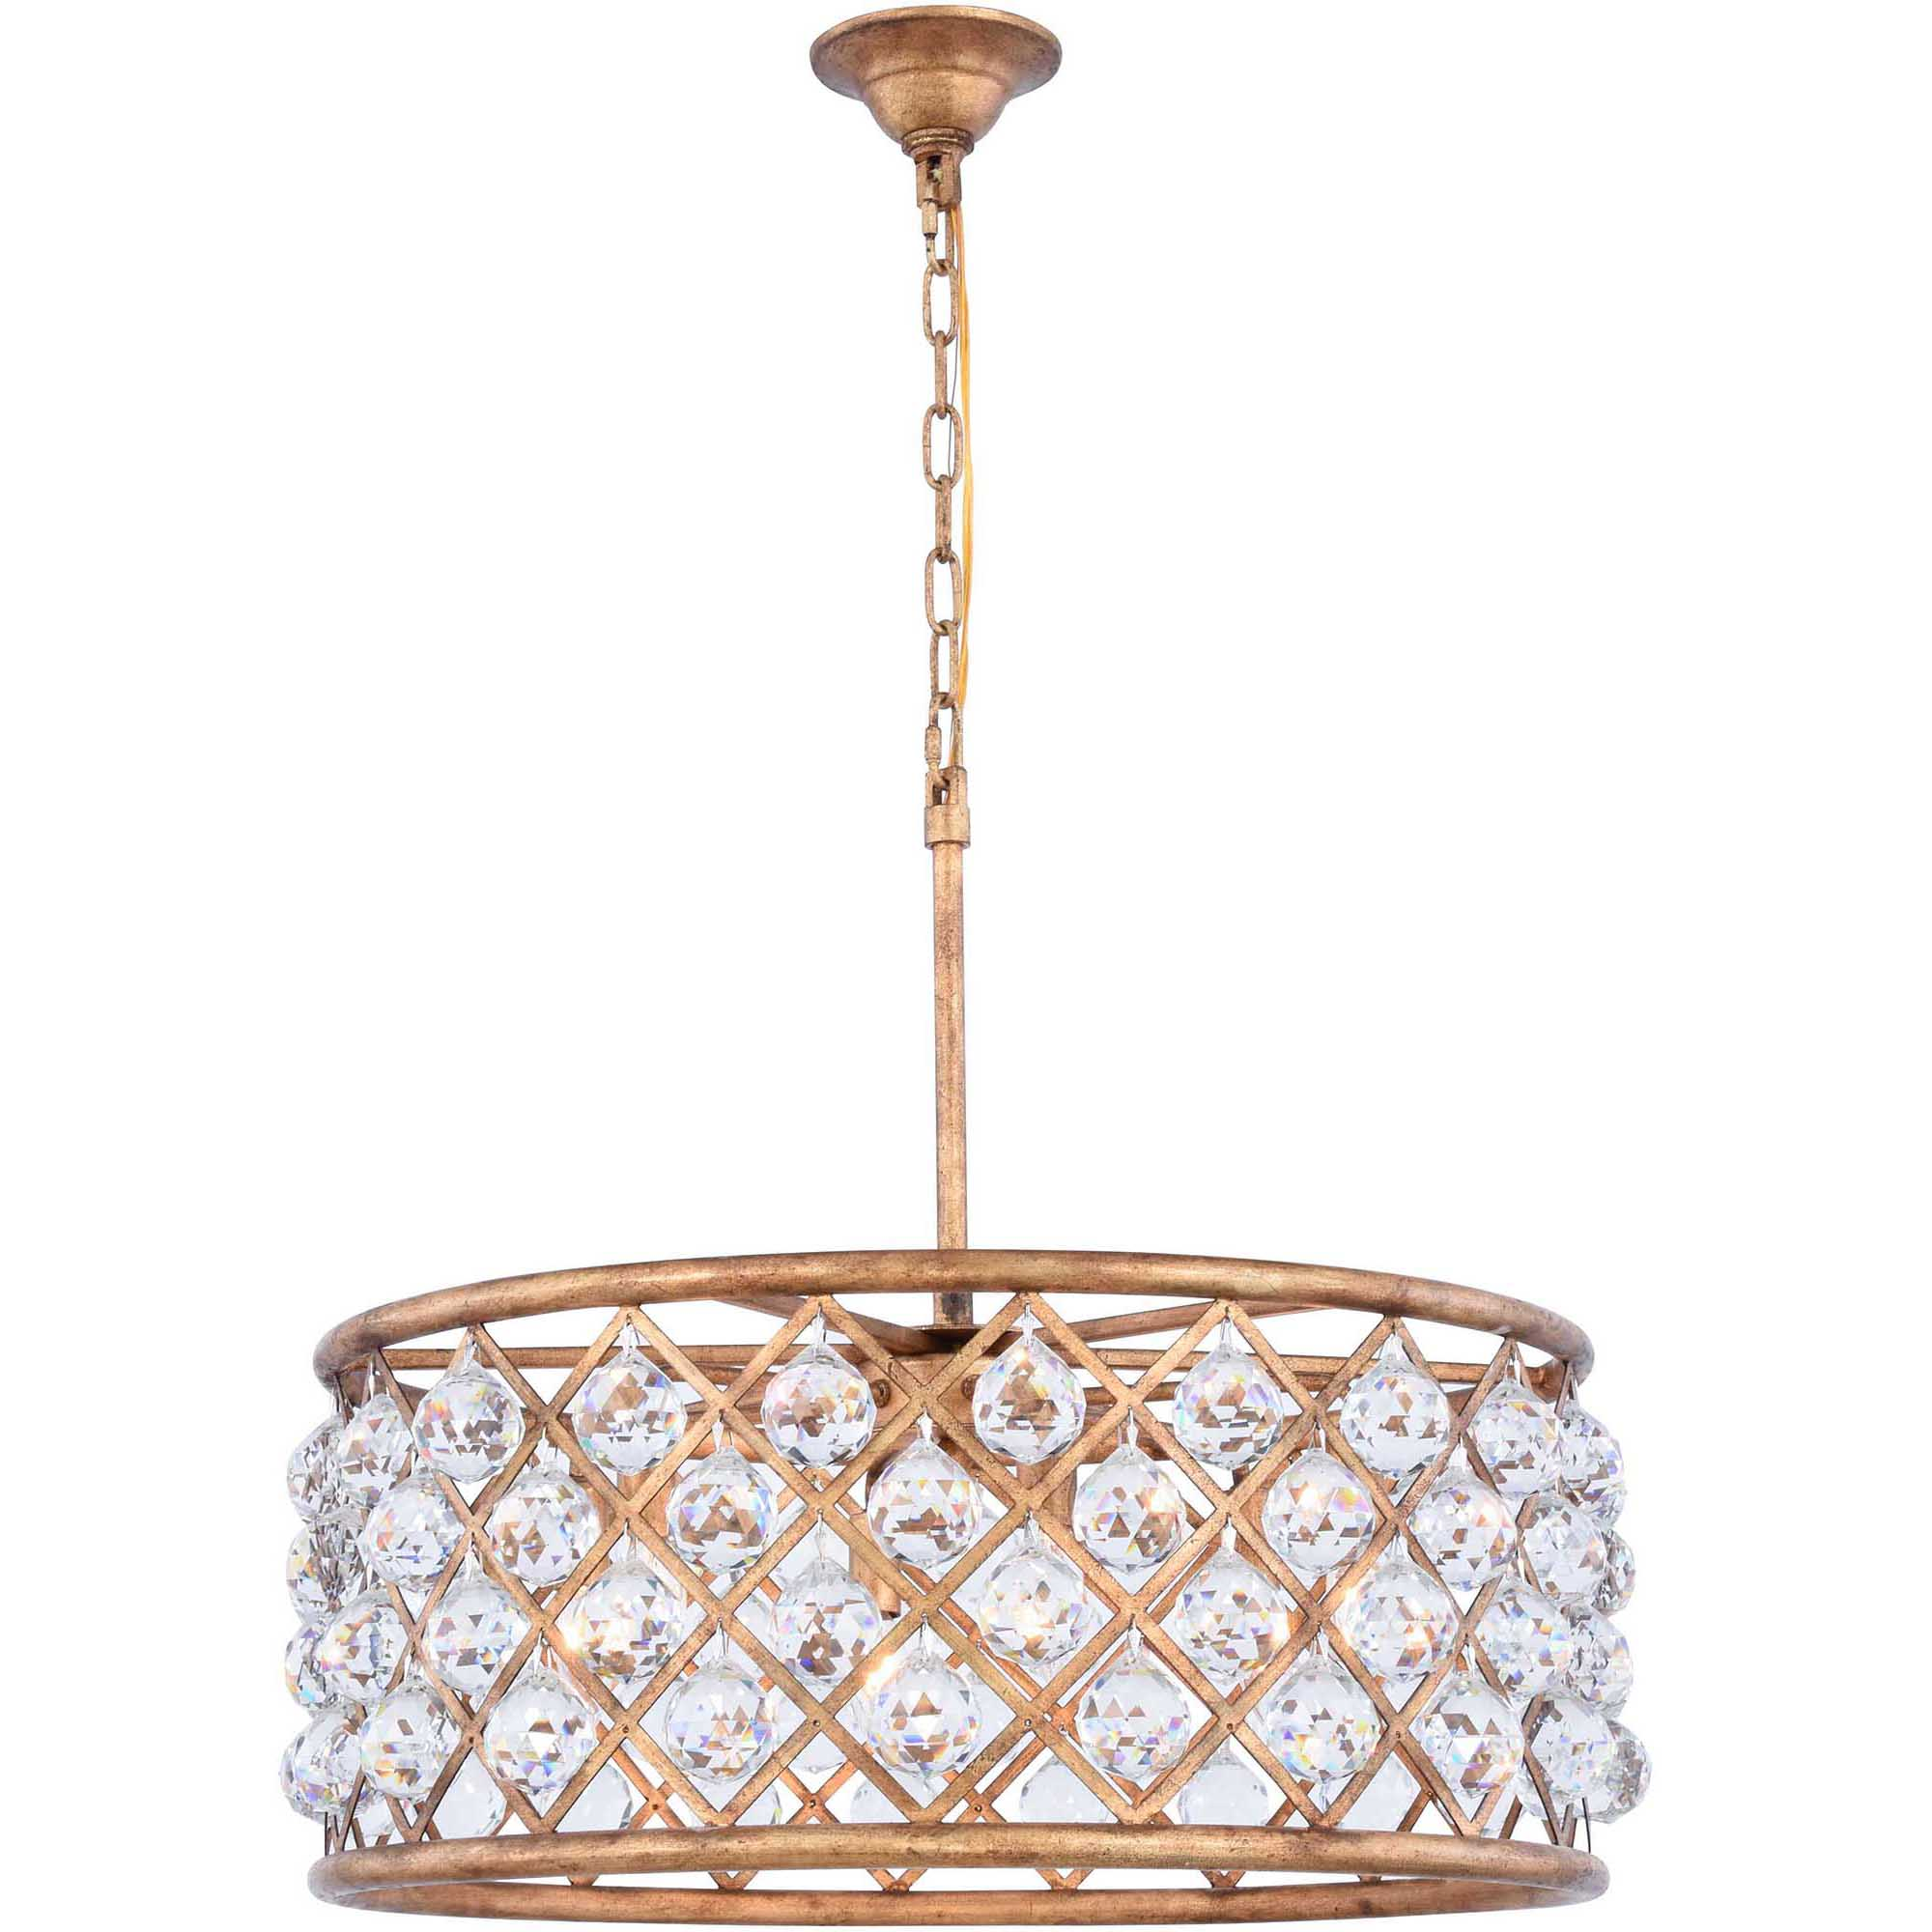 "Madison Collection Pendant Lamp D:25"" H:10.5"" Lt:6 Golden Iron Finish Royal Cut Crystal (Clear)"